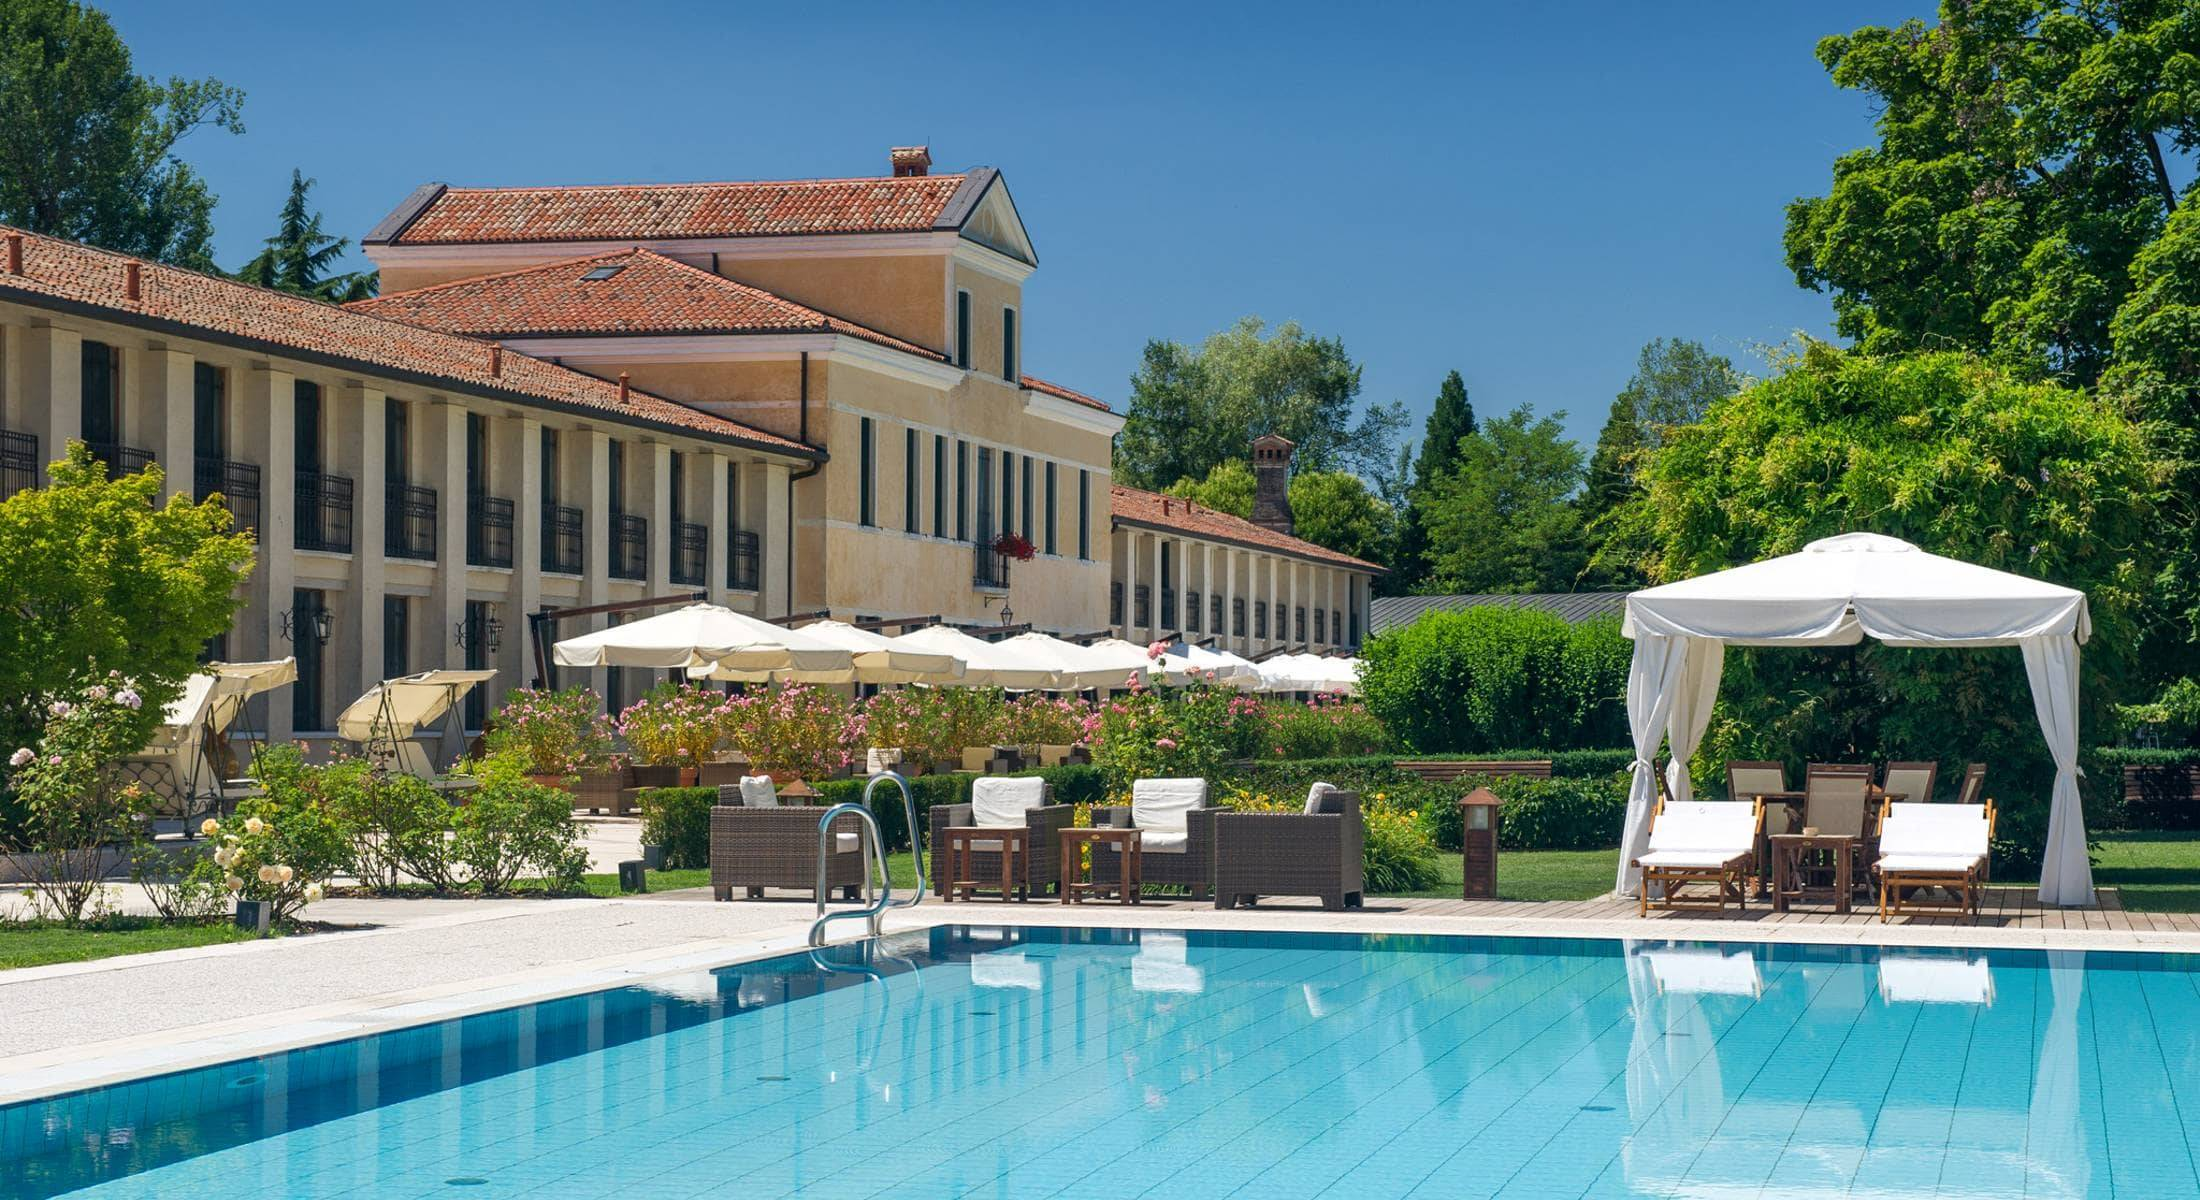 Country Hotel Relais Monaco in Treviso - Book a luxury hotel in Treviso